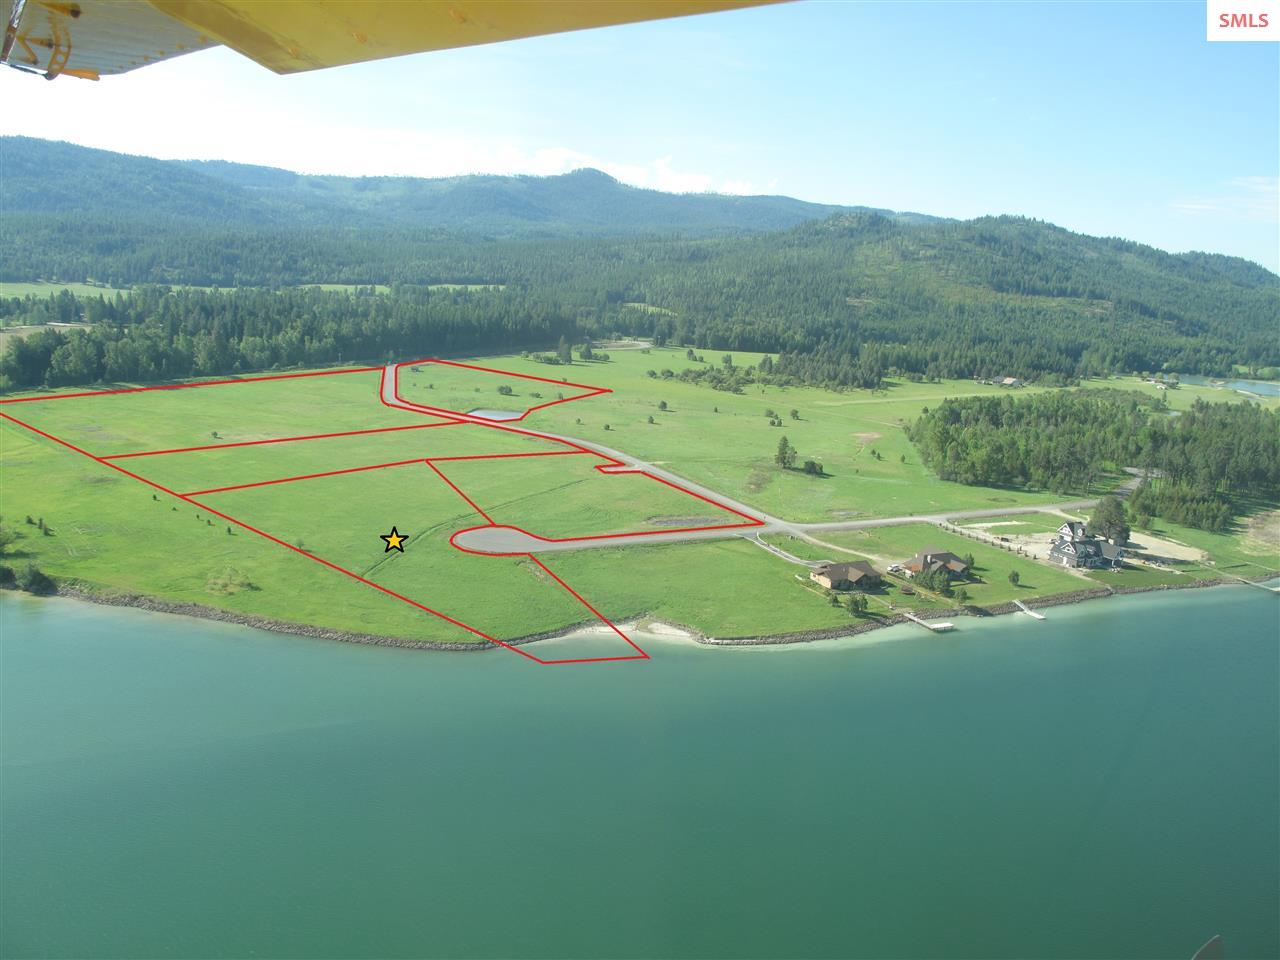 The RANCH at RIVERBEND - 4 level acre lot on the Pend Oreille River with incredible 360 degree views of the River & Mountains. Paved roads, utilities in, and ready to build! Private 80 feet of Pend Oreille River Waterfront, this lot makes for a spectacular build site for your dream home. Not only do you get stunning views but the location is situated a mere 15 min from downtown Sandpoint, shopping, restaurants and the beach, all while still enjoying the privacy and quite that living out of town brings.